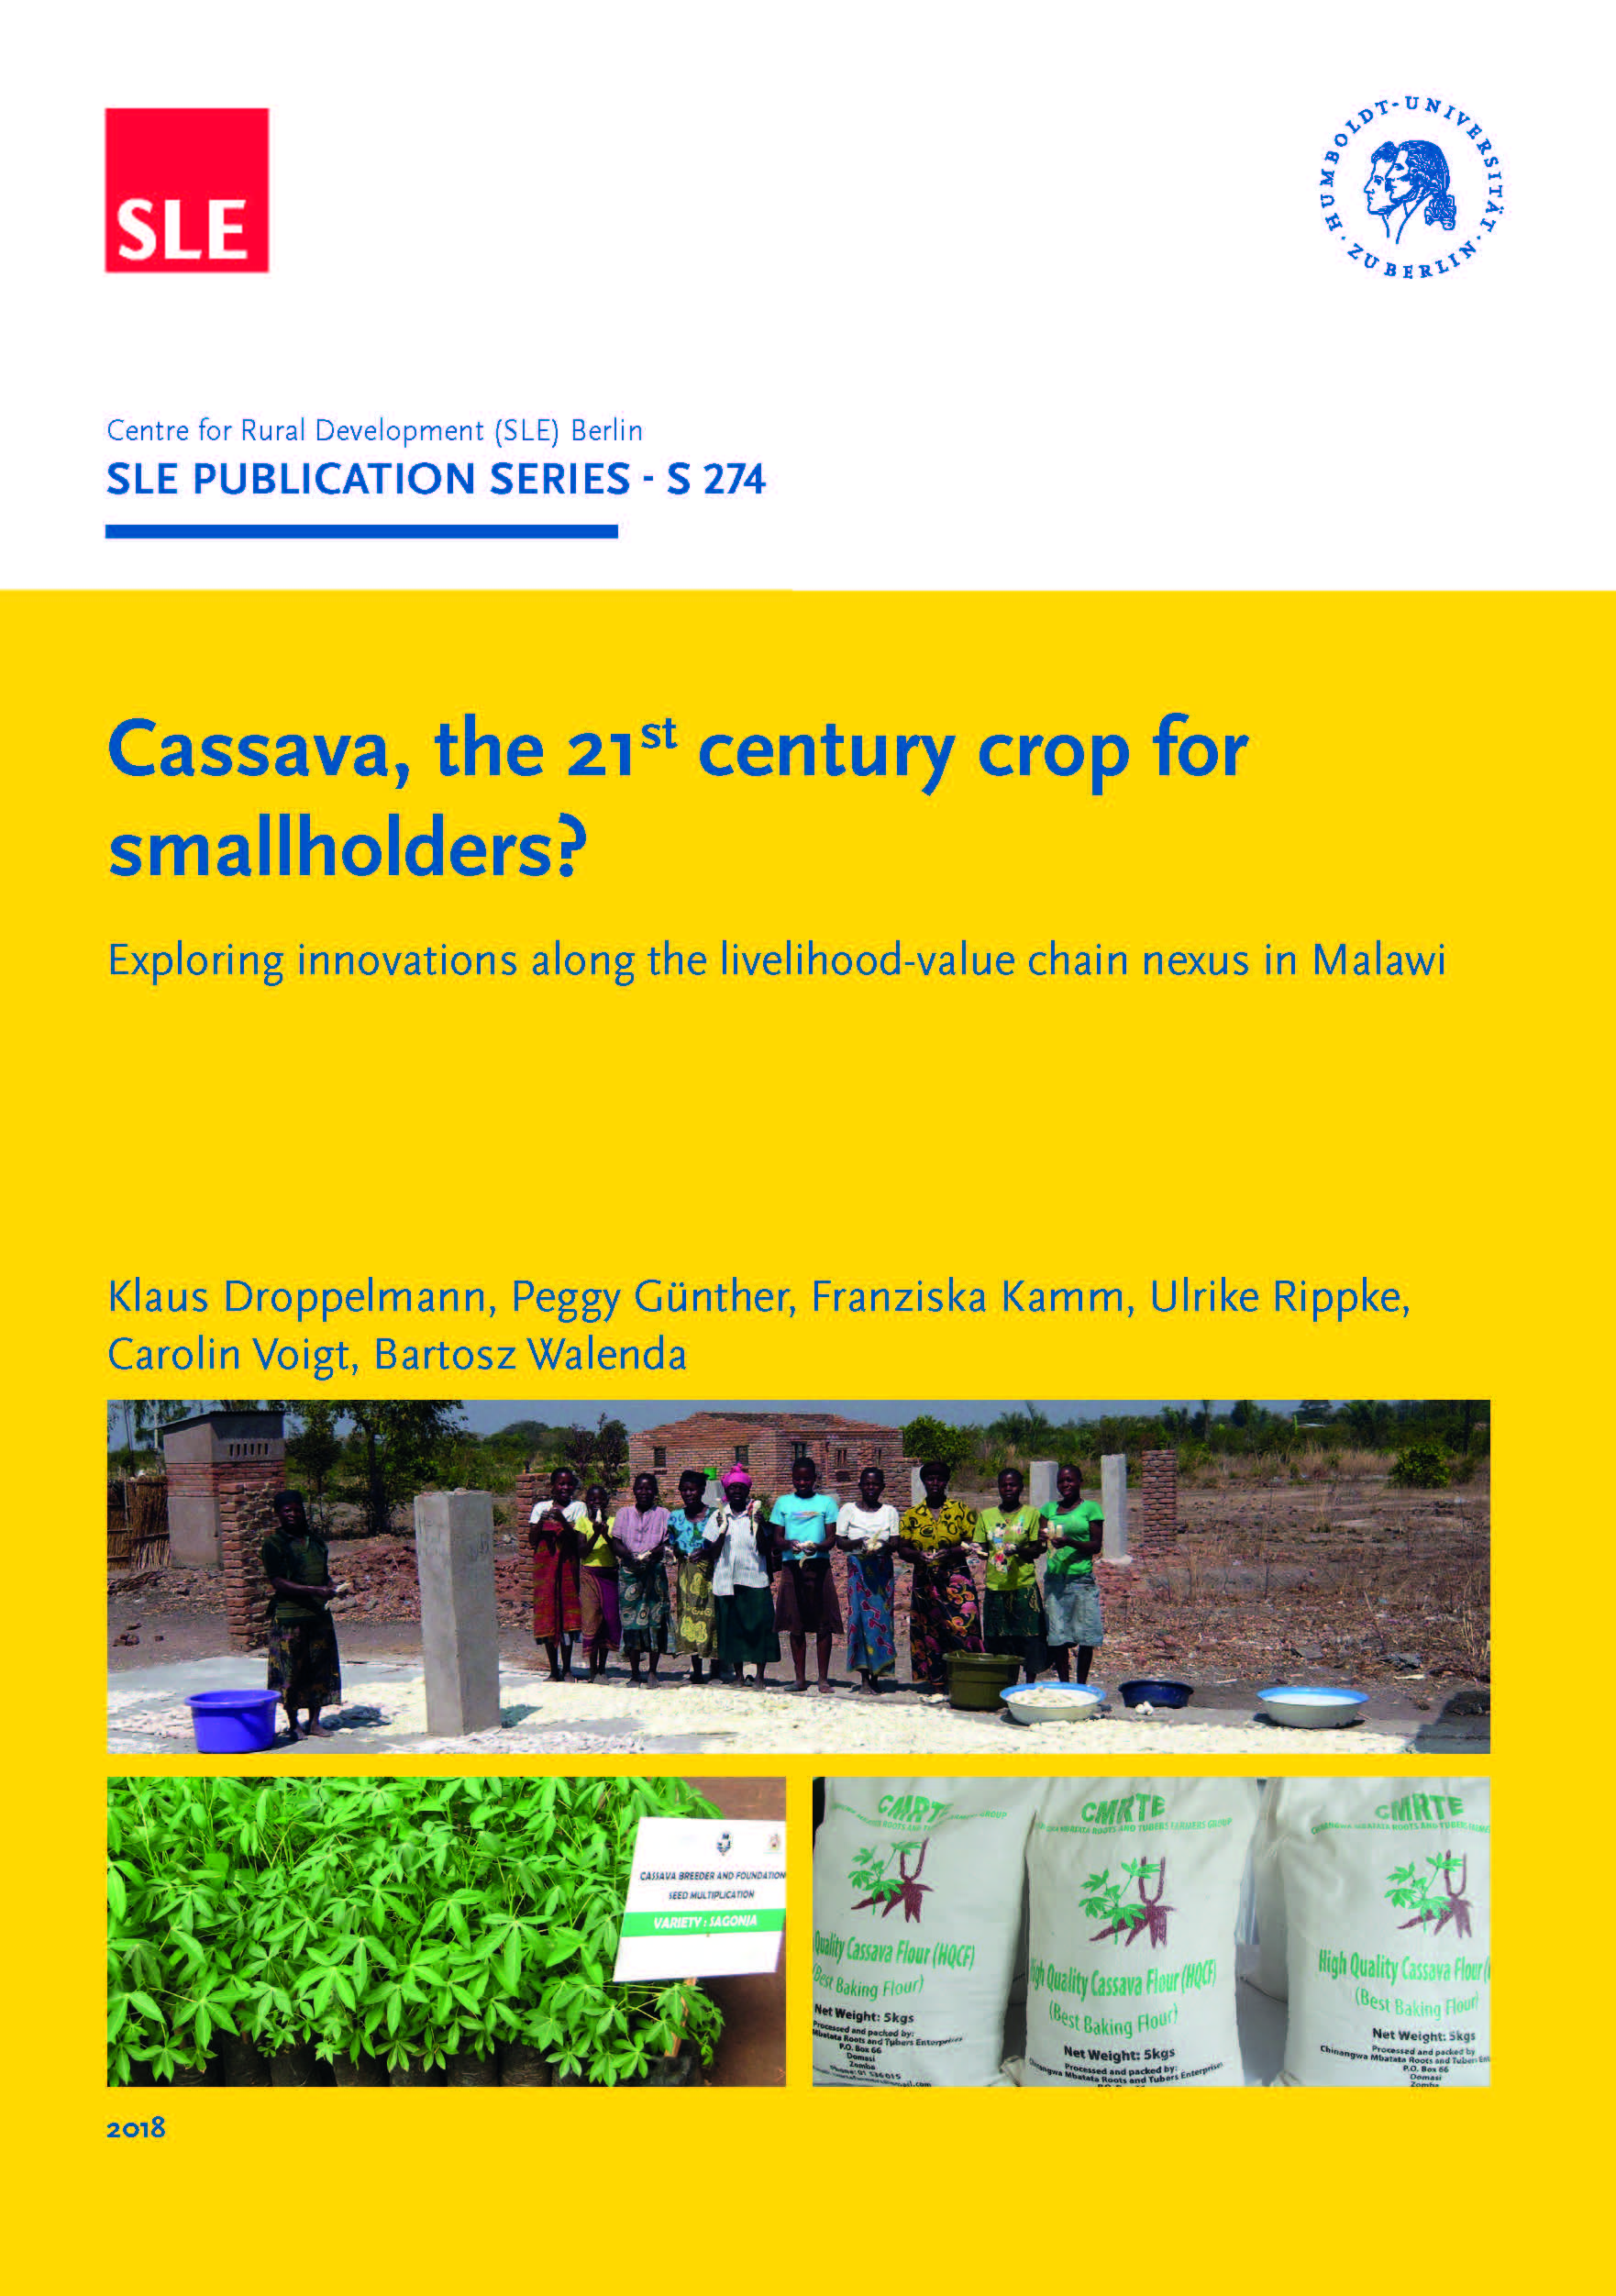 SLE 274 Cassava the 21st century crop for smallholders 1